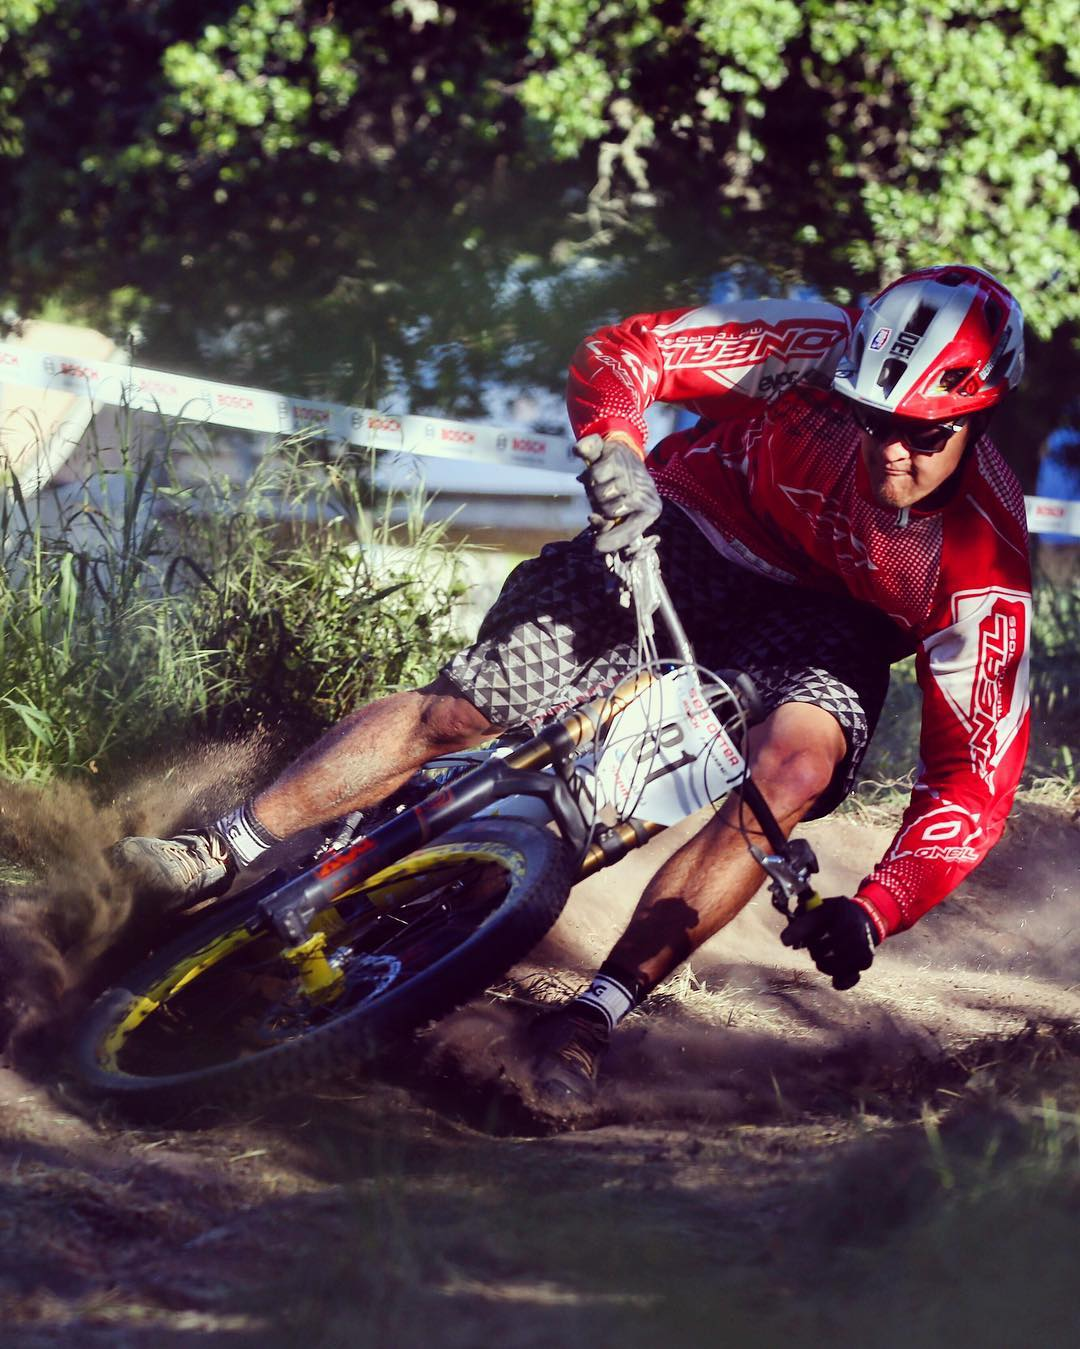 Railing a berm at the last Haibike  #eMTB race in california with @ejko28 . Who's up for another race! #Haibike #XDURO #mtb